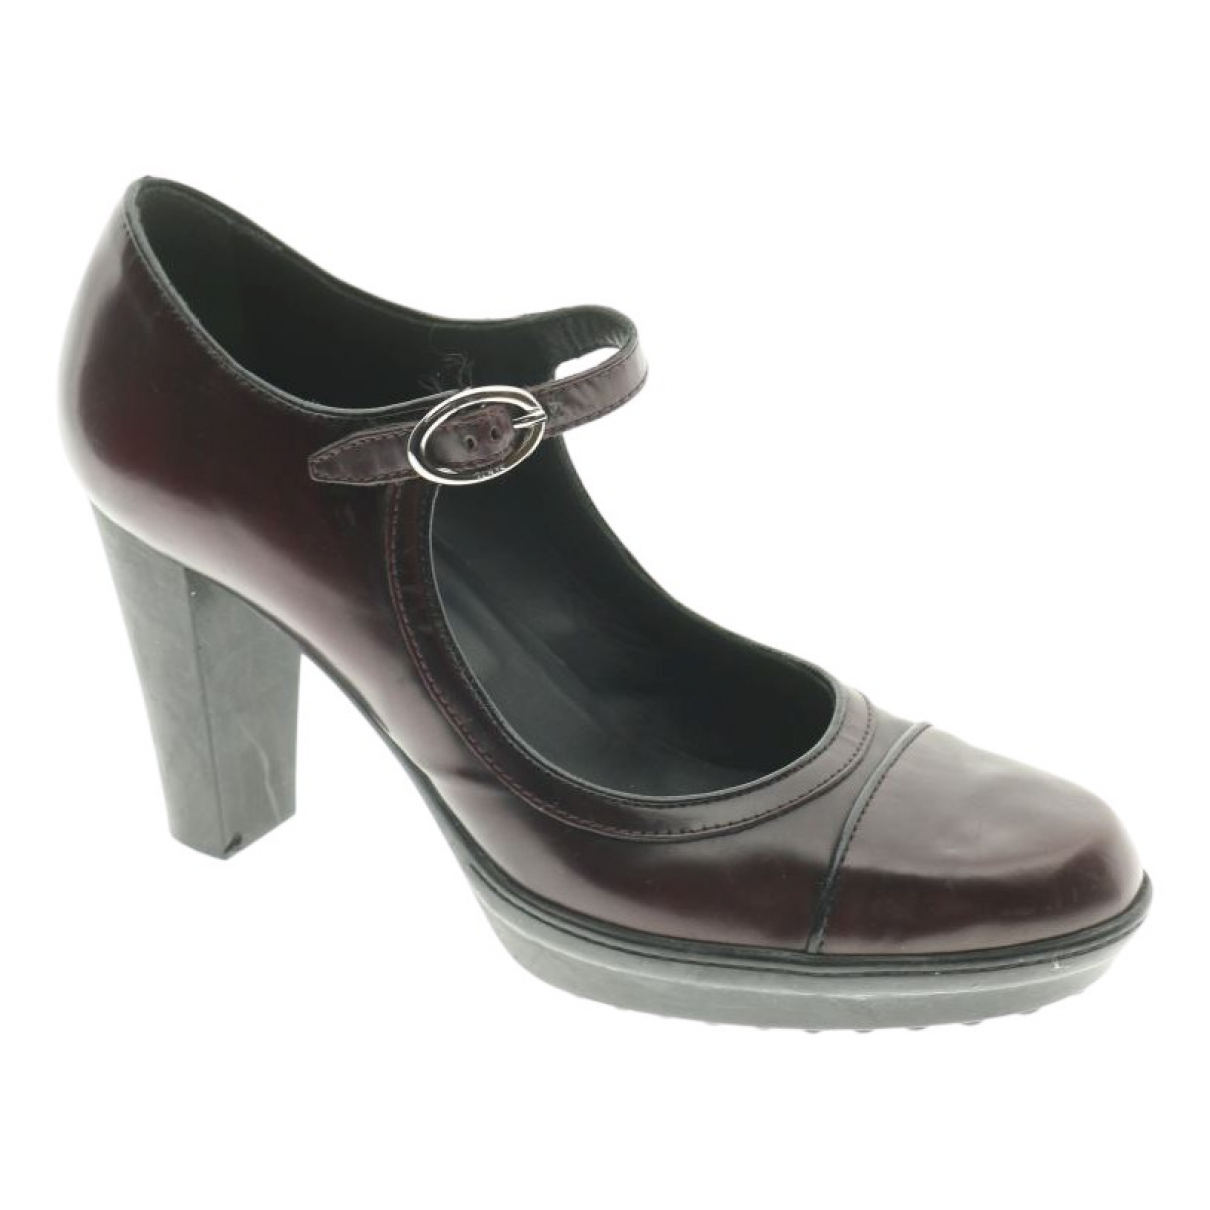 Tod's N Brown Leather Heels for Women 39 EU